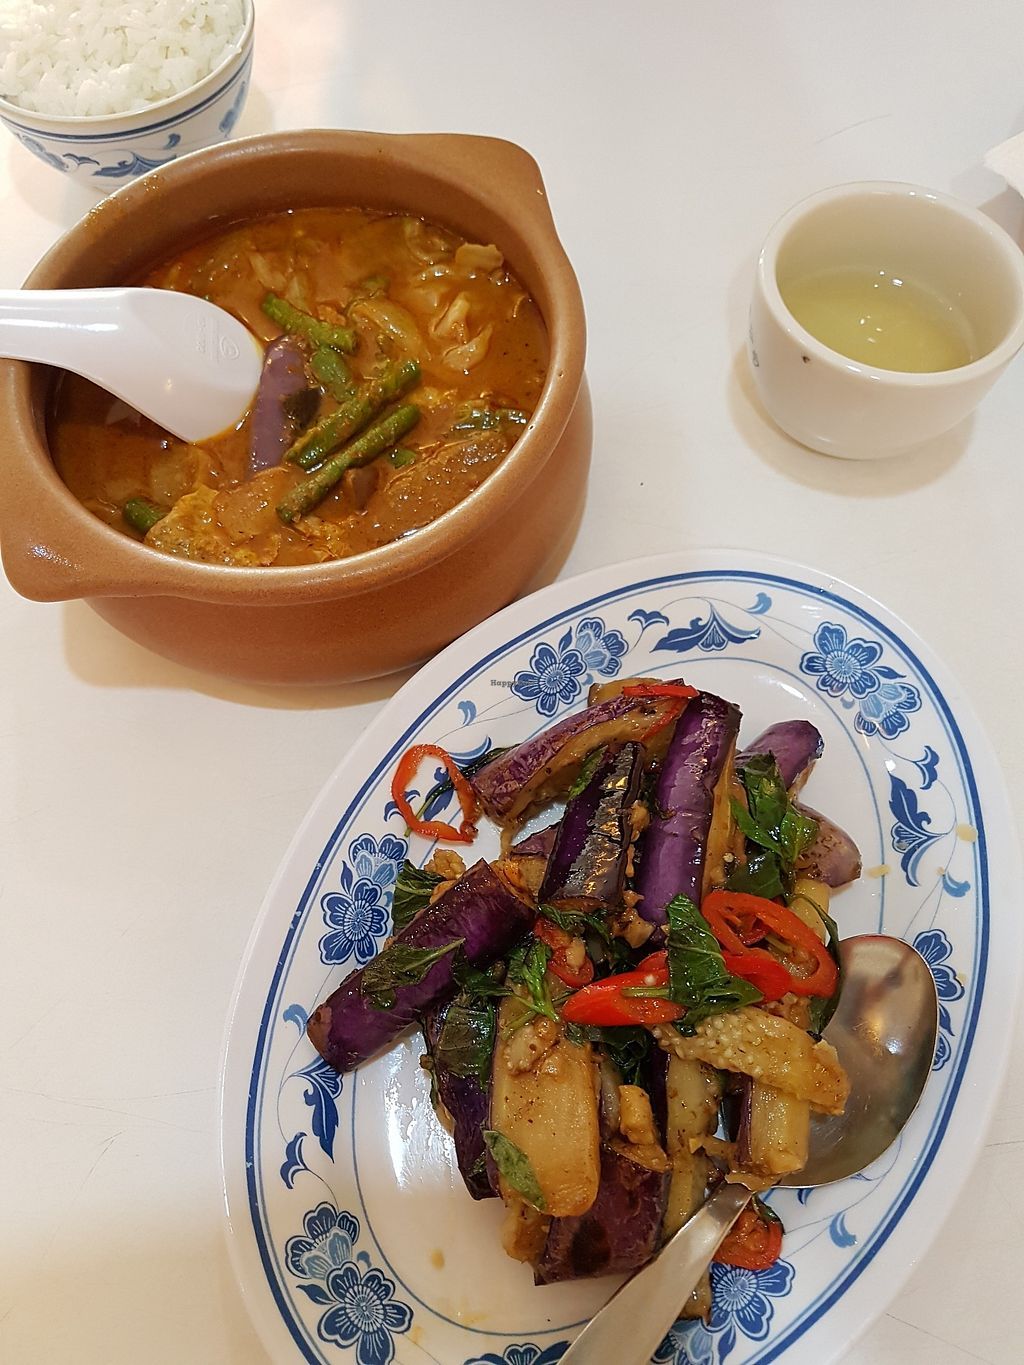 "Photo of Mei Lin Vegetarian  by <a href=""/members/profile/LaiNamKhim"">LaiNamKhim</a> <br/>Curry veggies and ""Three Cups Brinjal"" (Brinjal cooked with soy sauce and basil). All were good <br/> March 31, 2018  - <a href='/contact/abuse/image/27898/378546'>Report</a>"